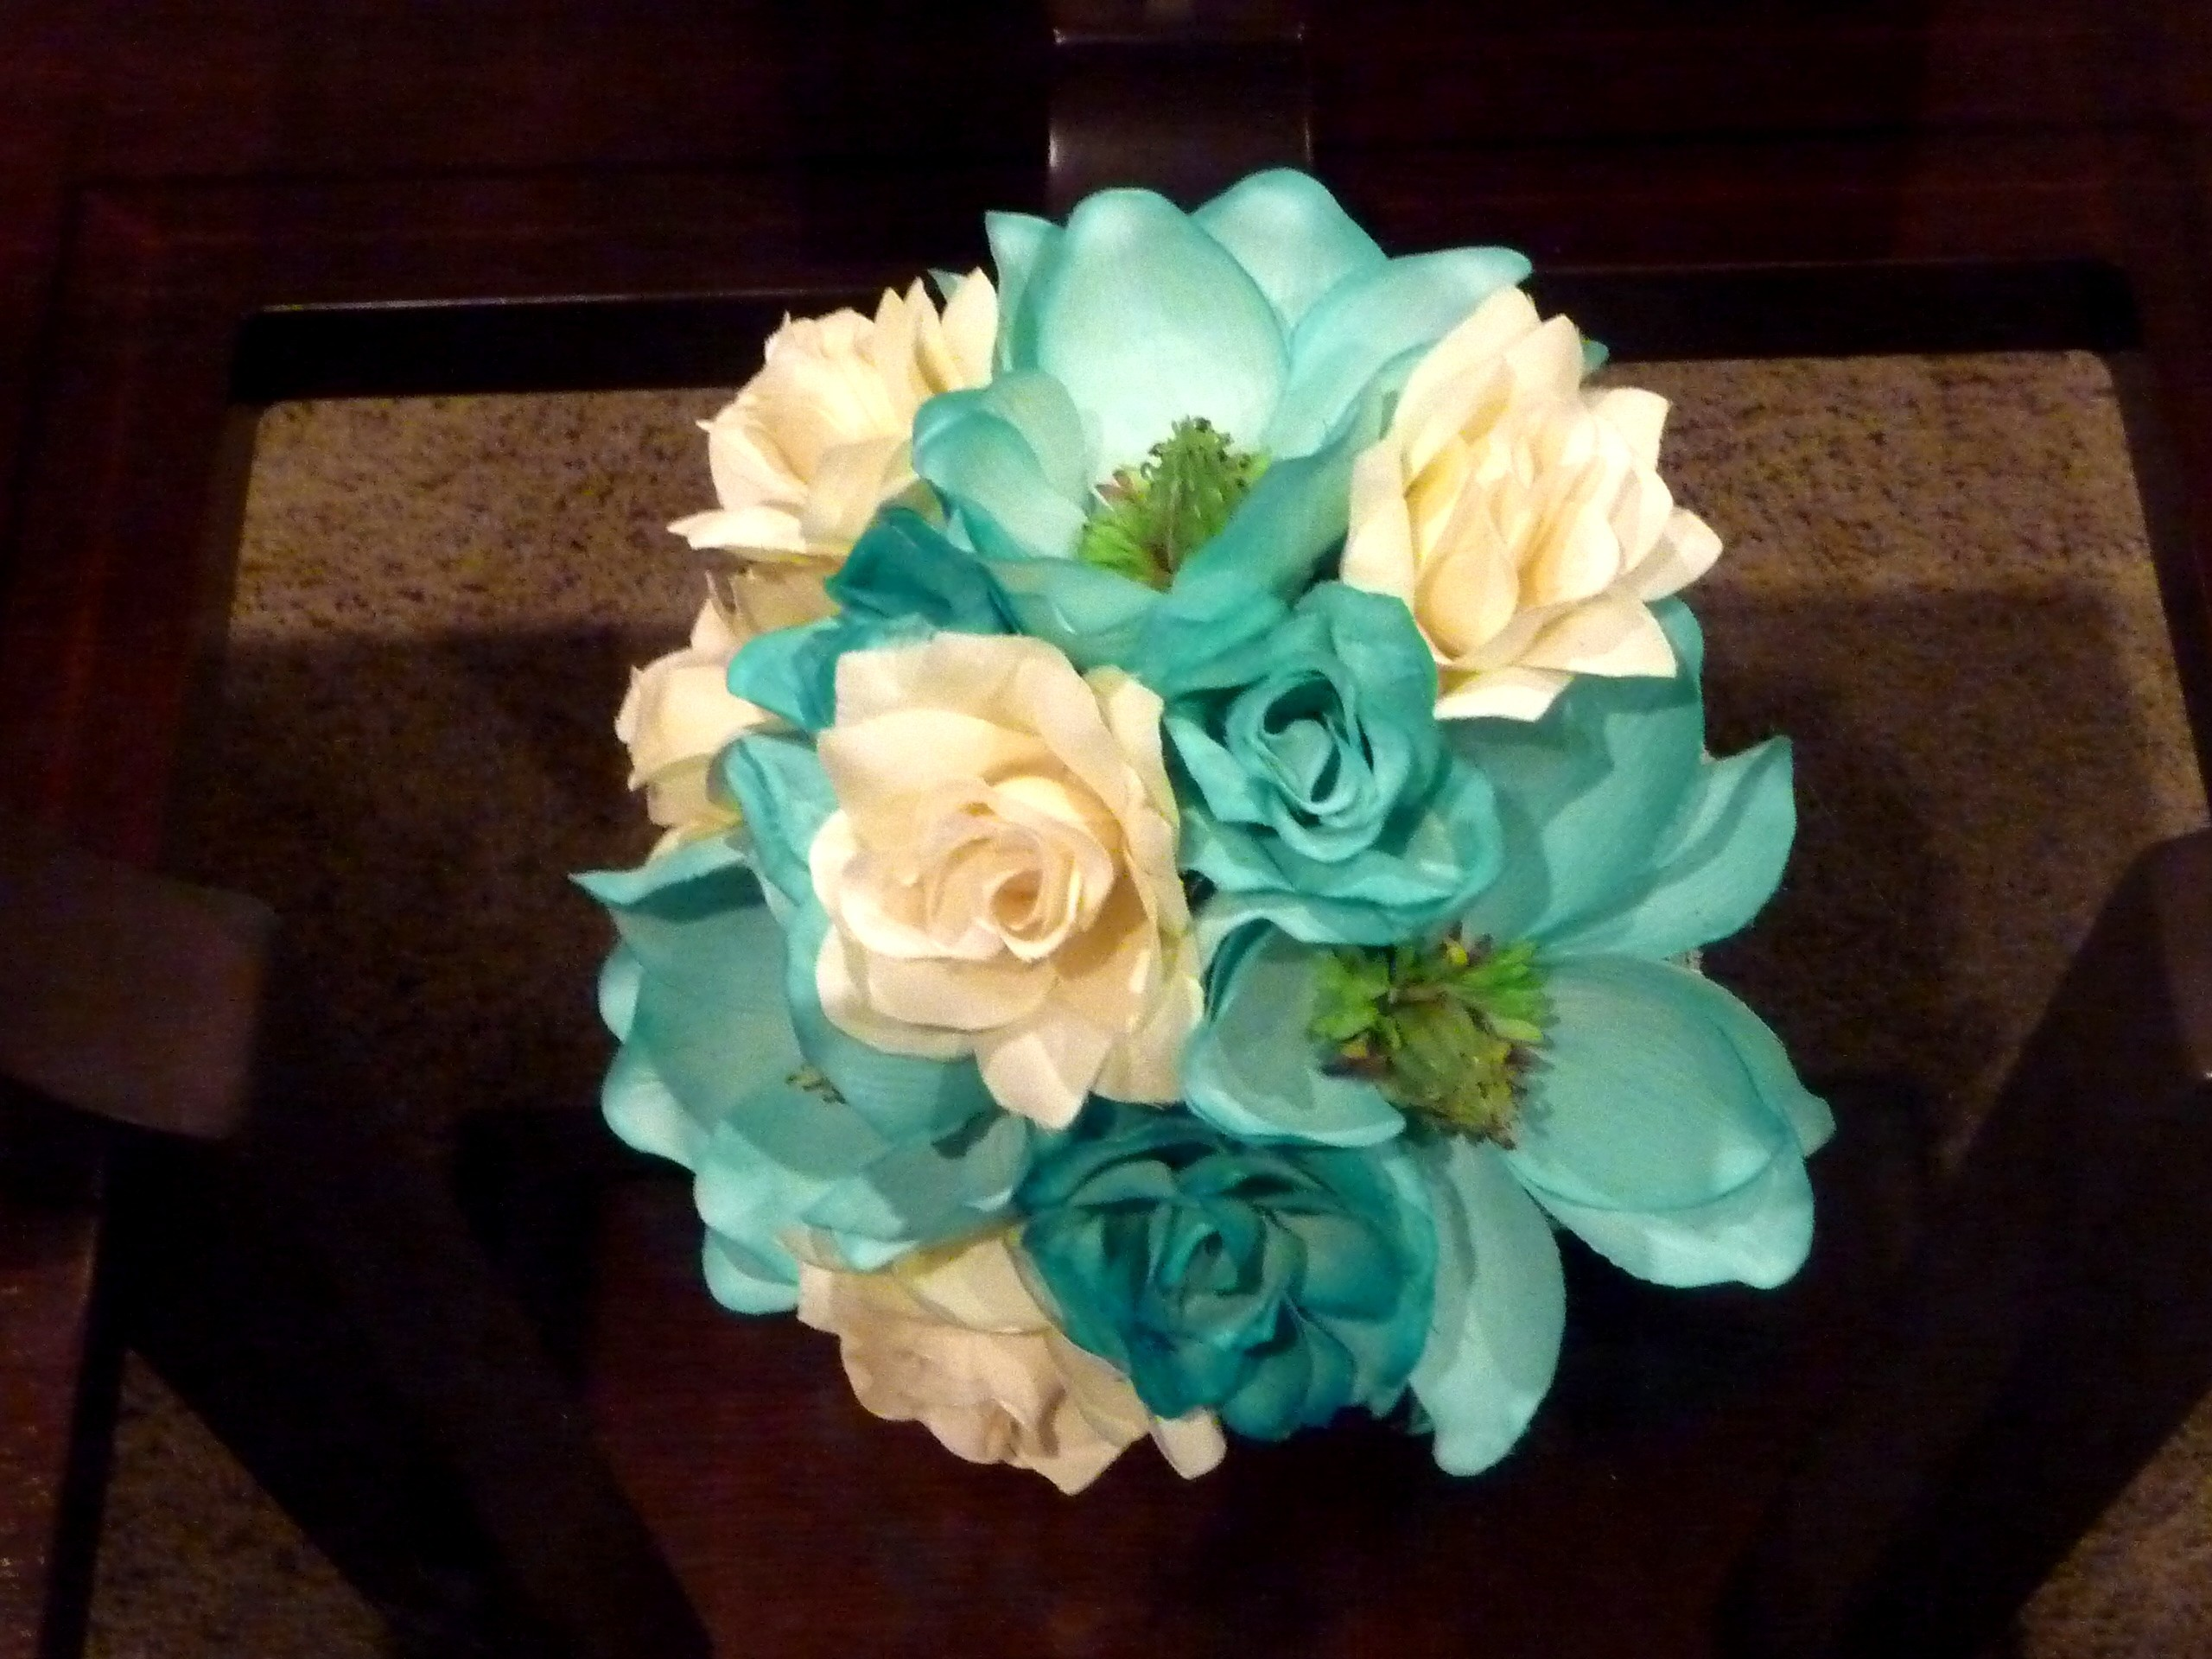 Ceremony, Reception, Flowers & Decor, Bridesmaids, Bridesmaids Dresses, Fashion, white, blue, Ceremony Flowers, Bridesmaid Bouquets, Centerpieces, Flowers, Wedding, Bridal, Teal, Bouquets, Turquoise, Silk, Savannah event decor, Flower Wedding Dresses, Silk Wedding Dresses